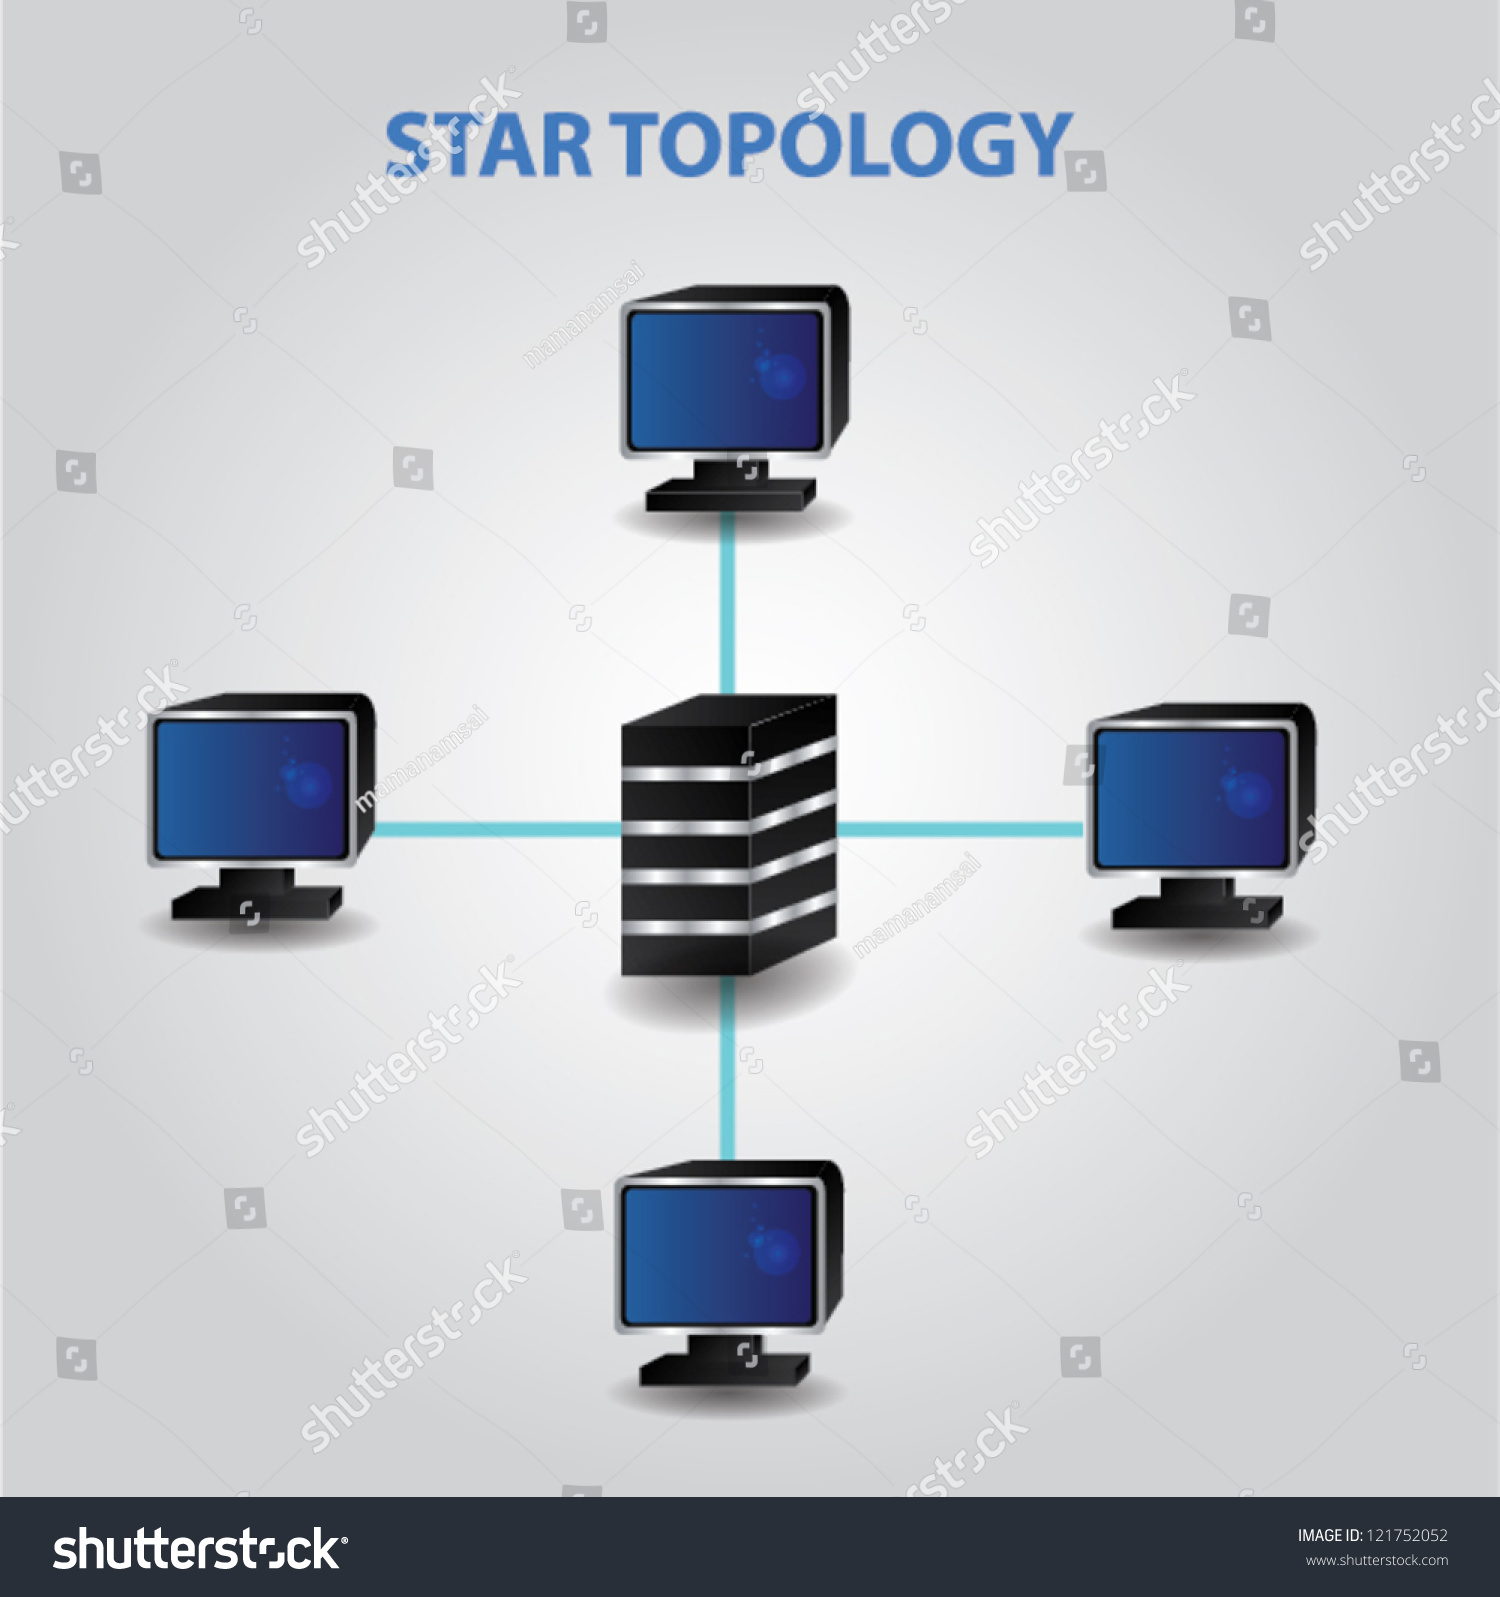 star bus network topology diagram blank wiggers social pictures to pin on pinterest